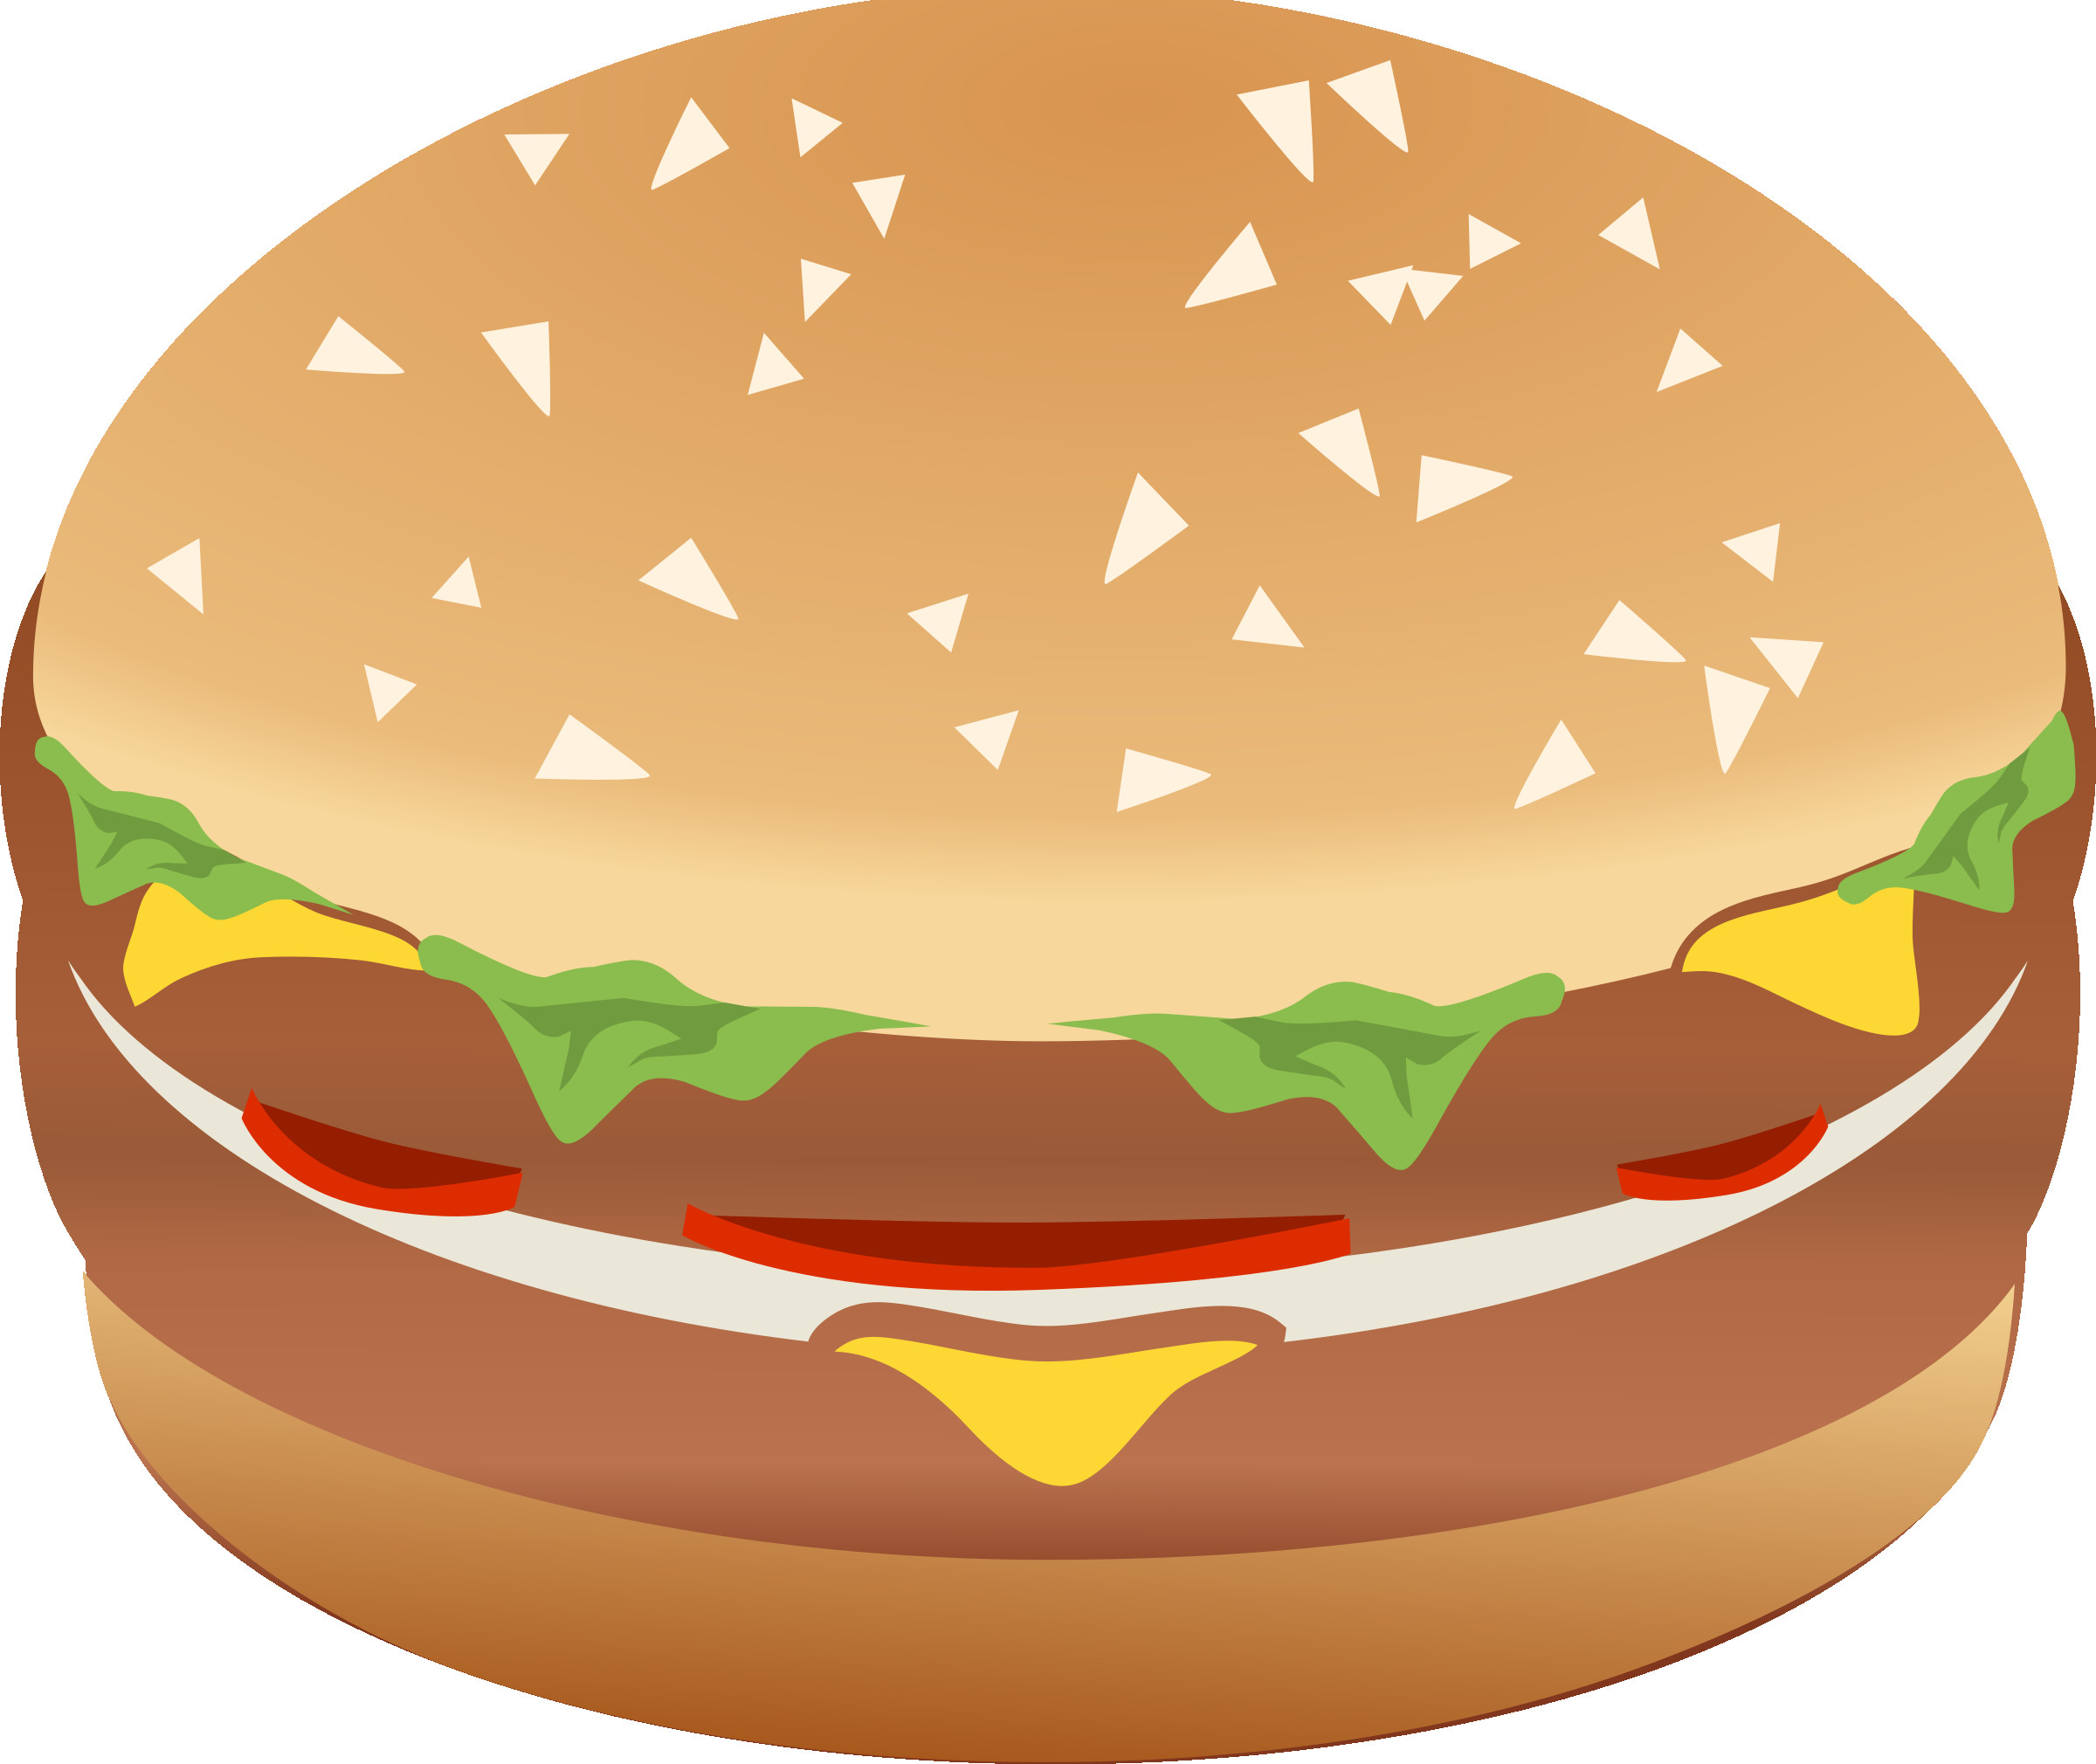 Hamburger clipart healthy burger. At getdrawings com free